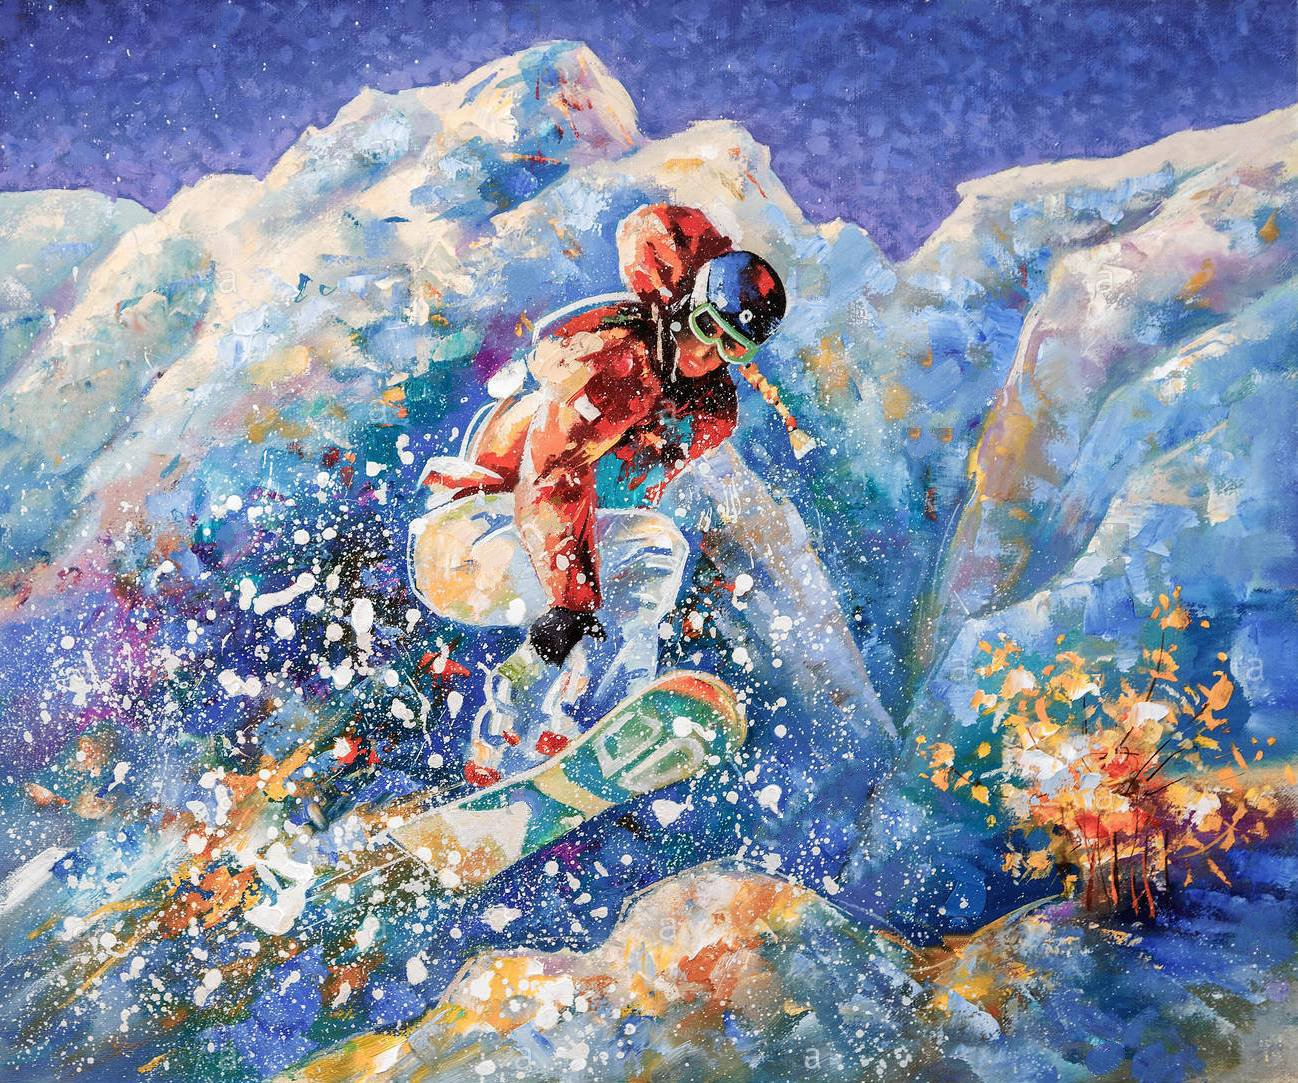 artwork girl snowboarder conquers mountain peaks author nikolay sivenkov PD1PKM